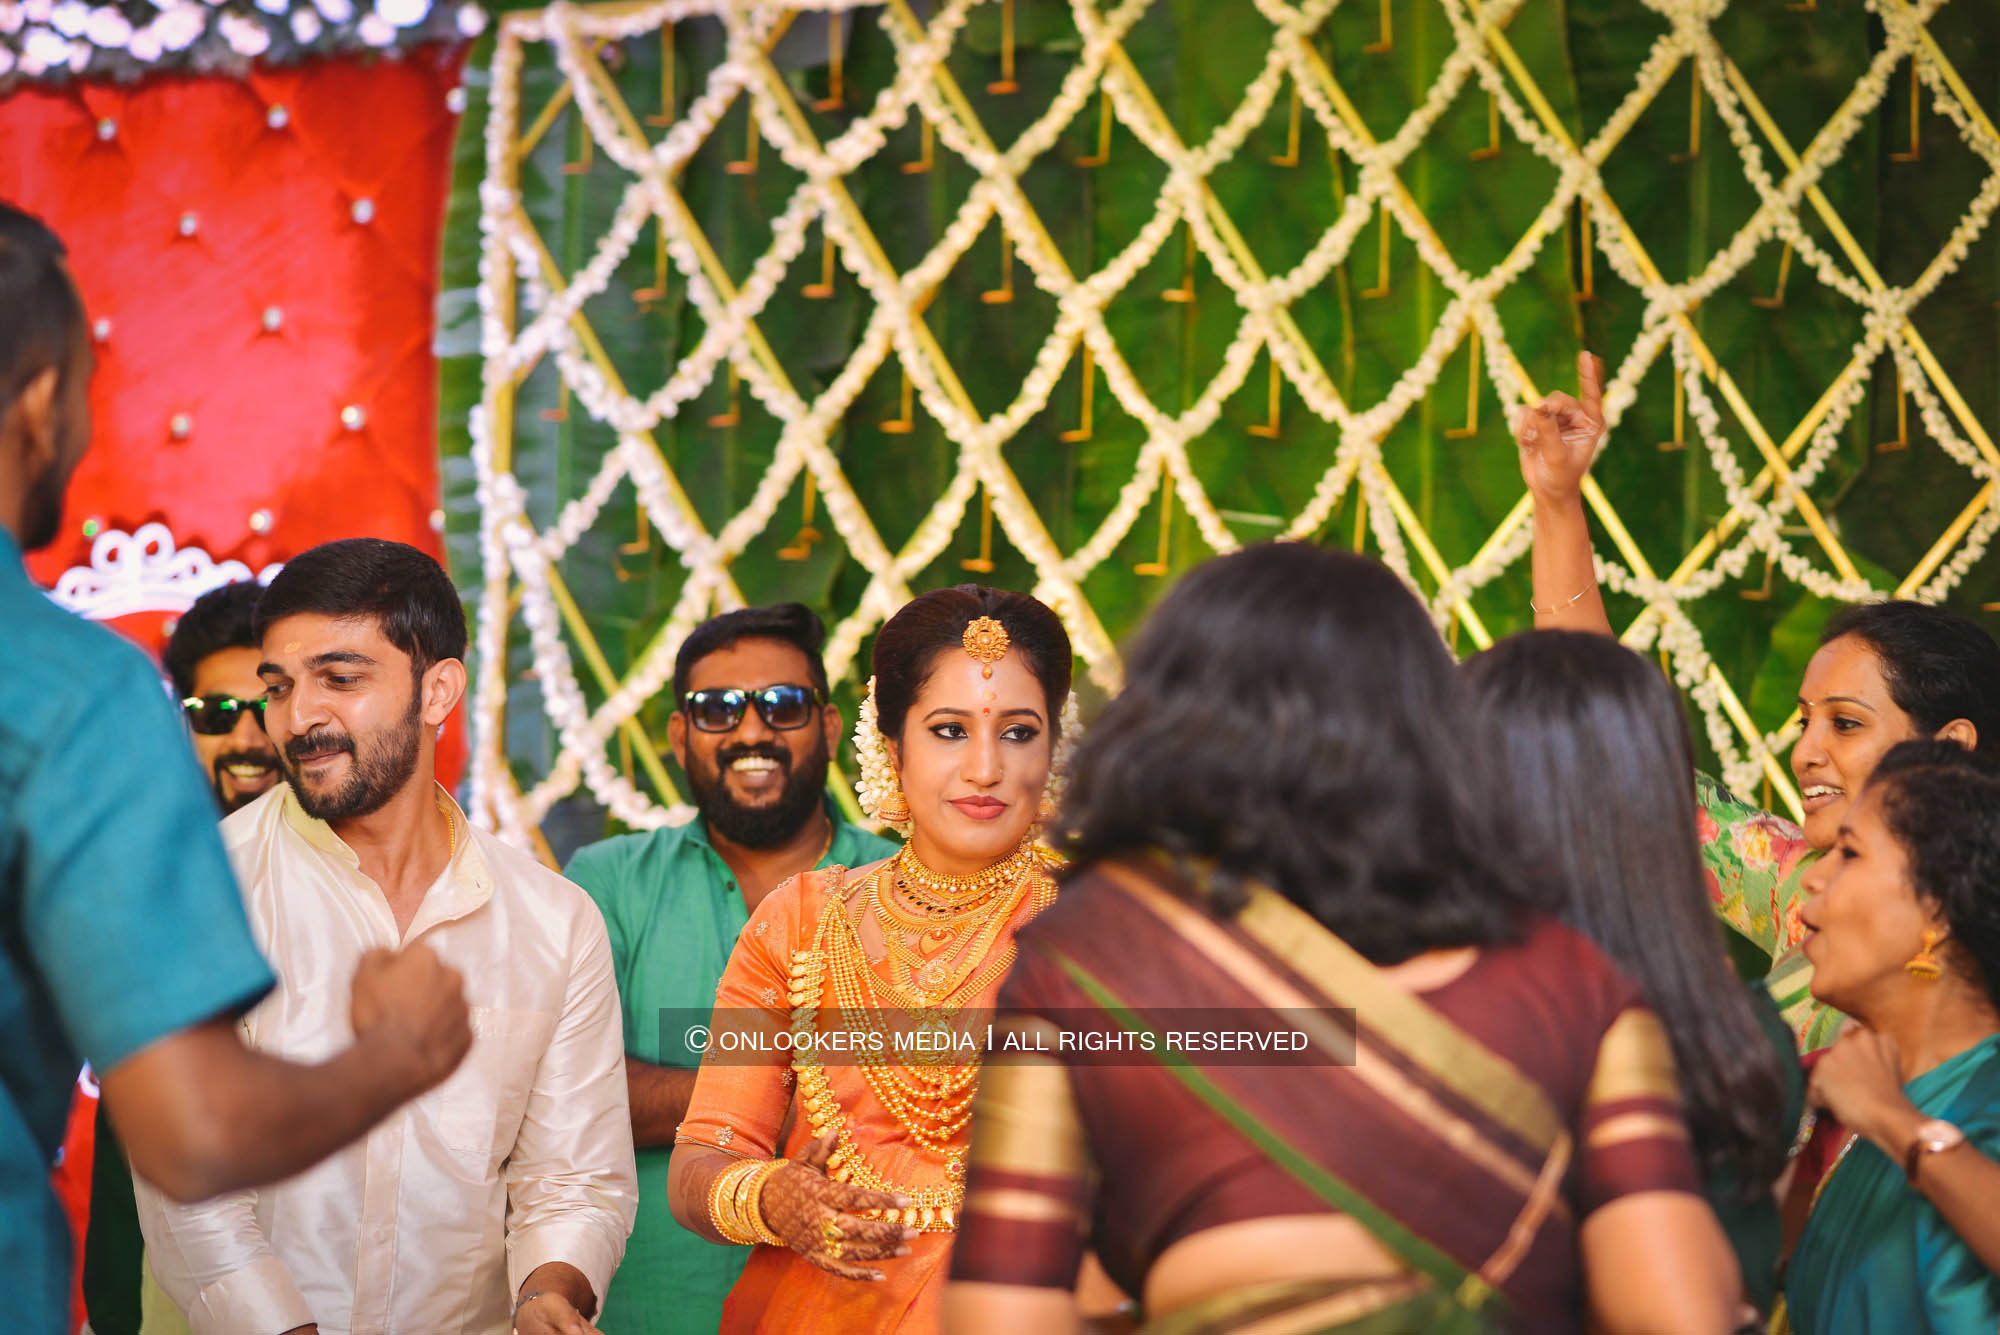 http://onlookersmedia.in/wp-content/uploads/2018/05/sreejith-vijay-wedding-stills-images-143.jpg